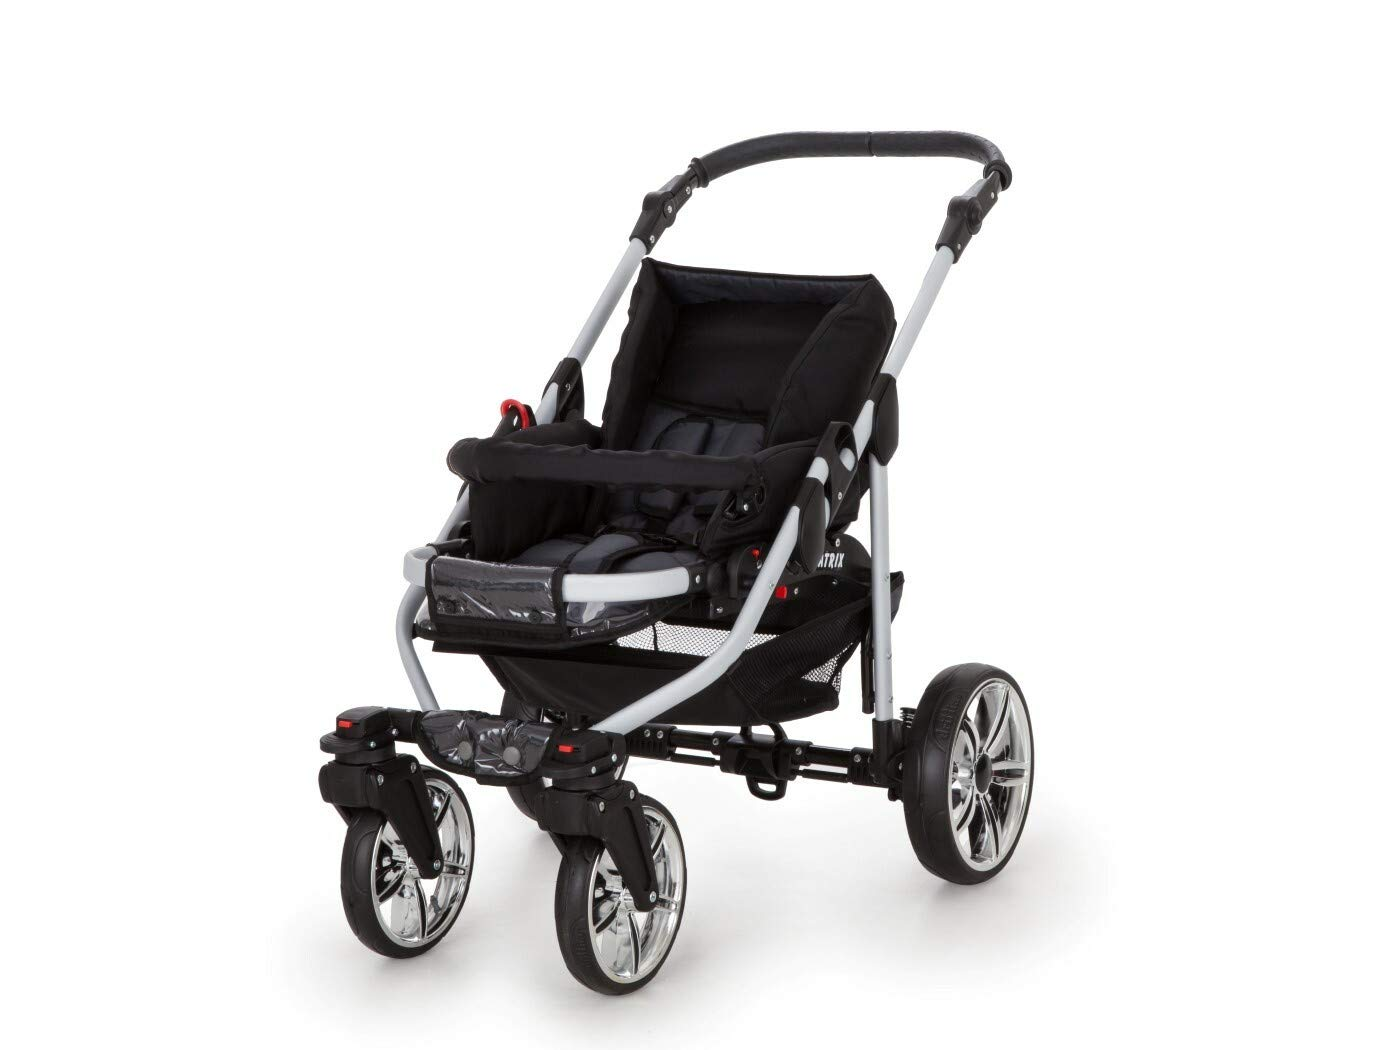 Travel System Stroller Pram Pushchair 2in1 3in1 Set Isofix X-Car by SaintBaby Black & Check 3in1 with Baby seat SaintBaby 3in1 or 2in1 Selectable. At 3in1 you will also receive the car seat (baby seat). Of course you get the baby tub (classic pram) as well as the buggy attachment (sports seat) no matter if 2in1 or 3in1. The car naturally complies with the EU safety standard EN1888. During production and before shipment, each wagon is carefully inspected so that you can be sure you have one of the best wagons. Saintbaby stands for all-in-one carefree packages, so you will also receive a diaper bag in the same colour as the car as well as rain and insect protection free of charge. With all the colours of this pram you will find the pram of your dreams. 7